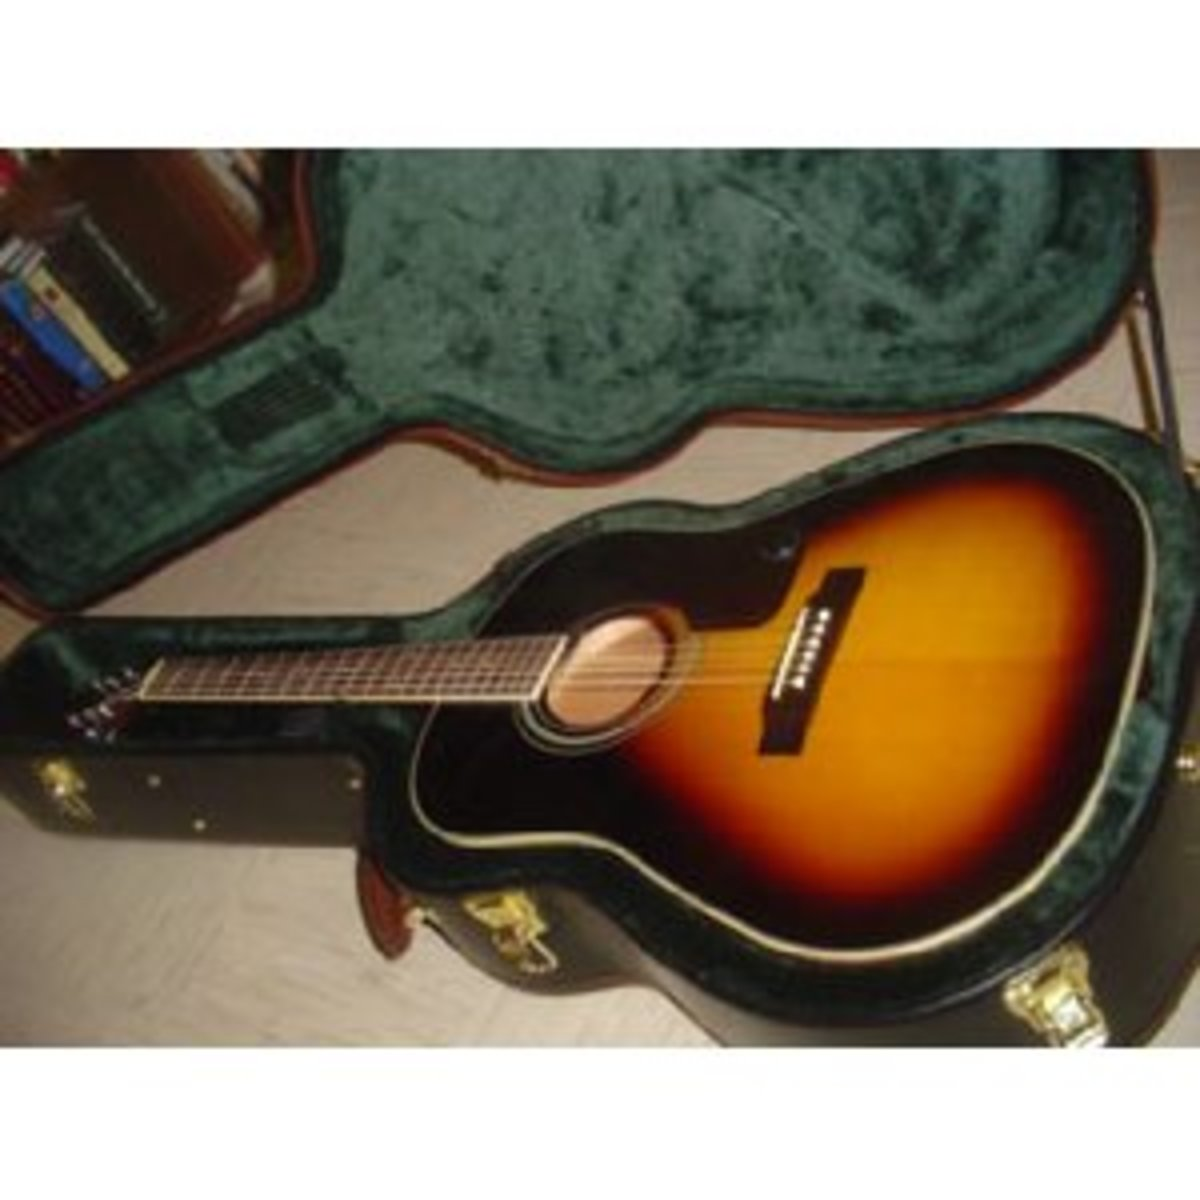 I should have had mine in a case, but the case cost almost as much as my guitar.